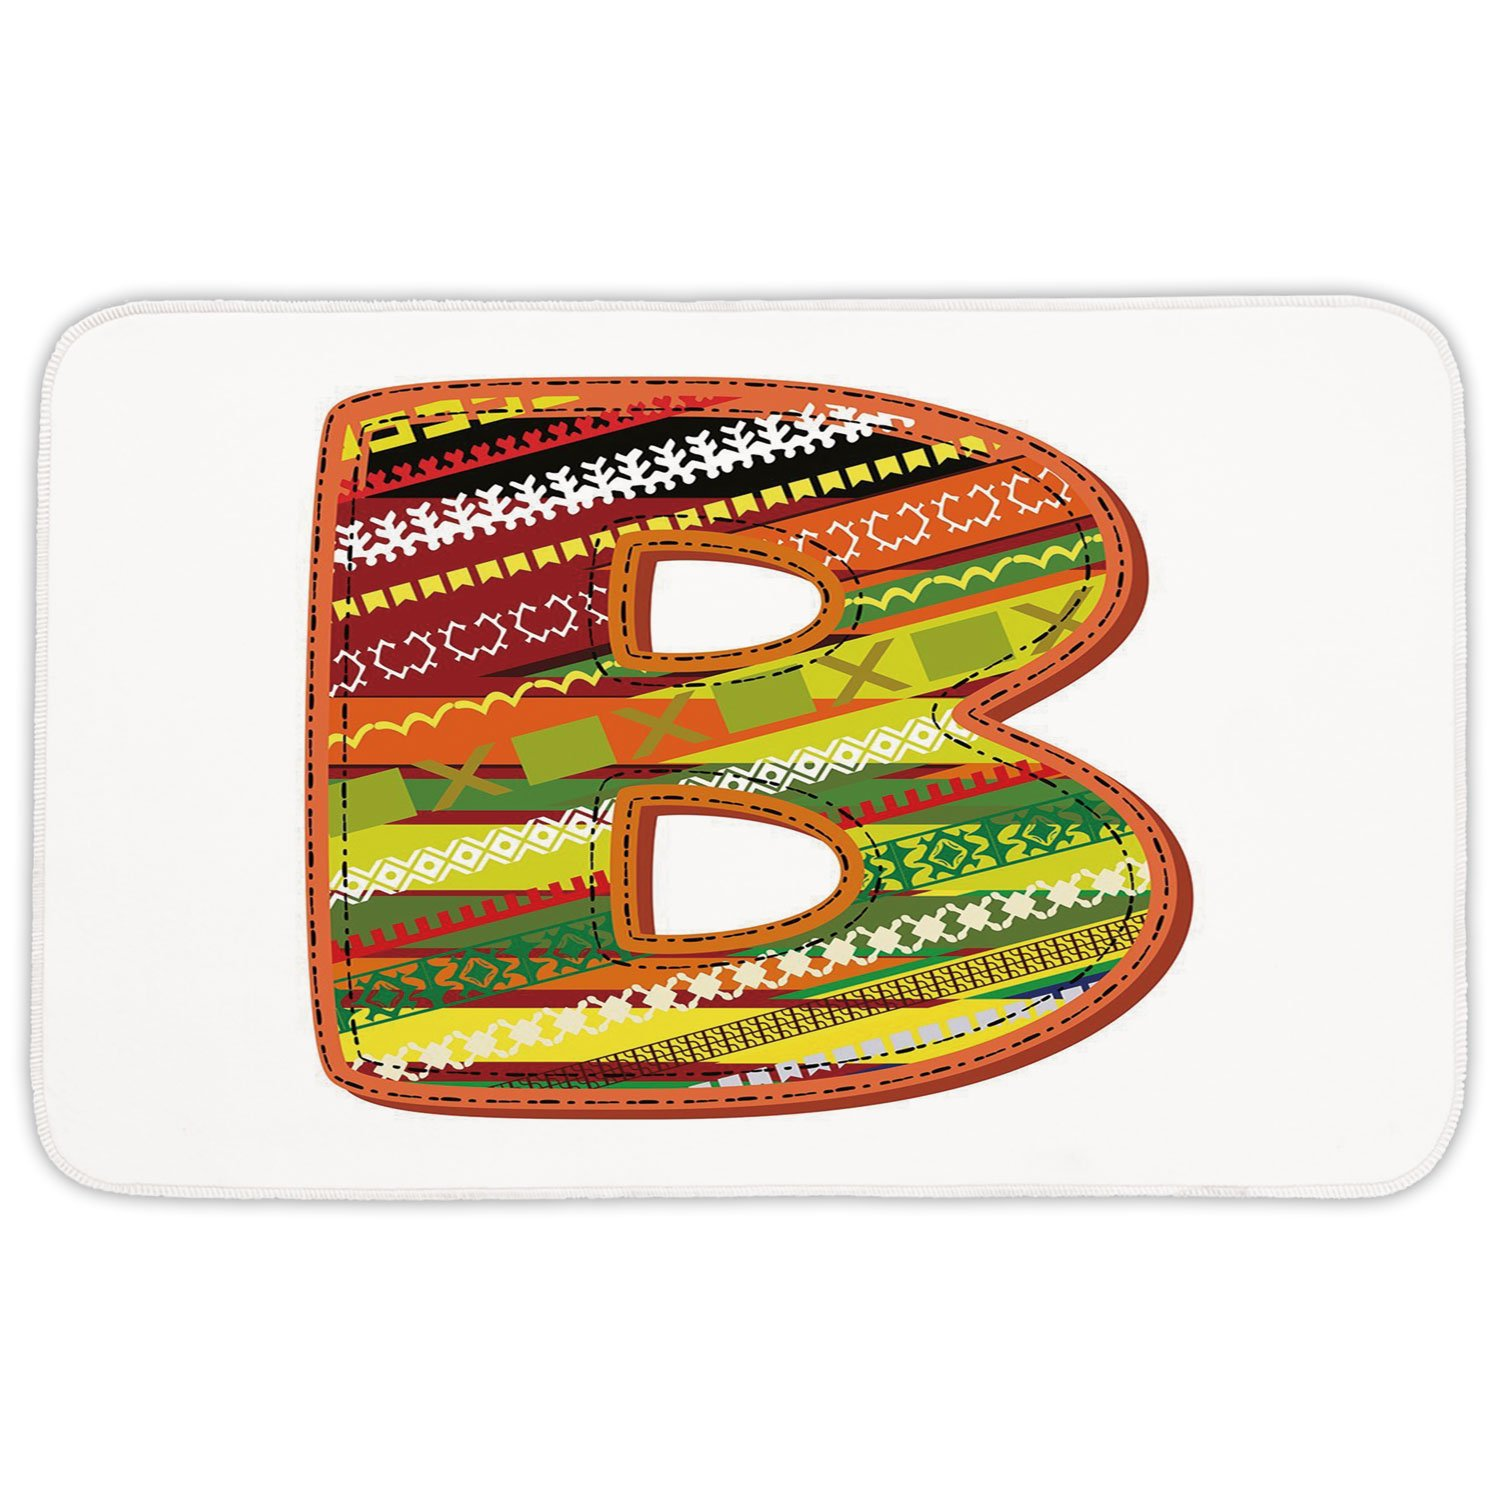 Rectangular Area Rug Mat Rug,Letter B,Winter Season Inspired Typing Tool Art Design Digitally Made Multicolor Palette Decorative,Multicolor,Home Decor Mat with Non Slip Backing